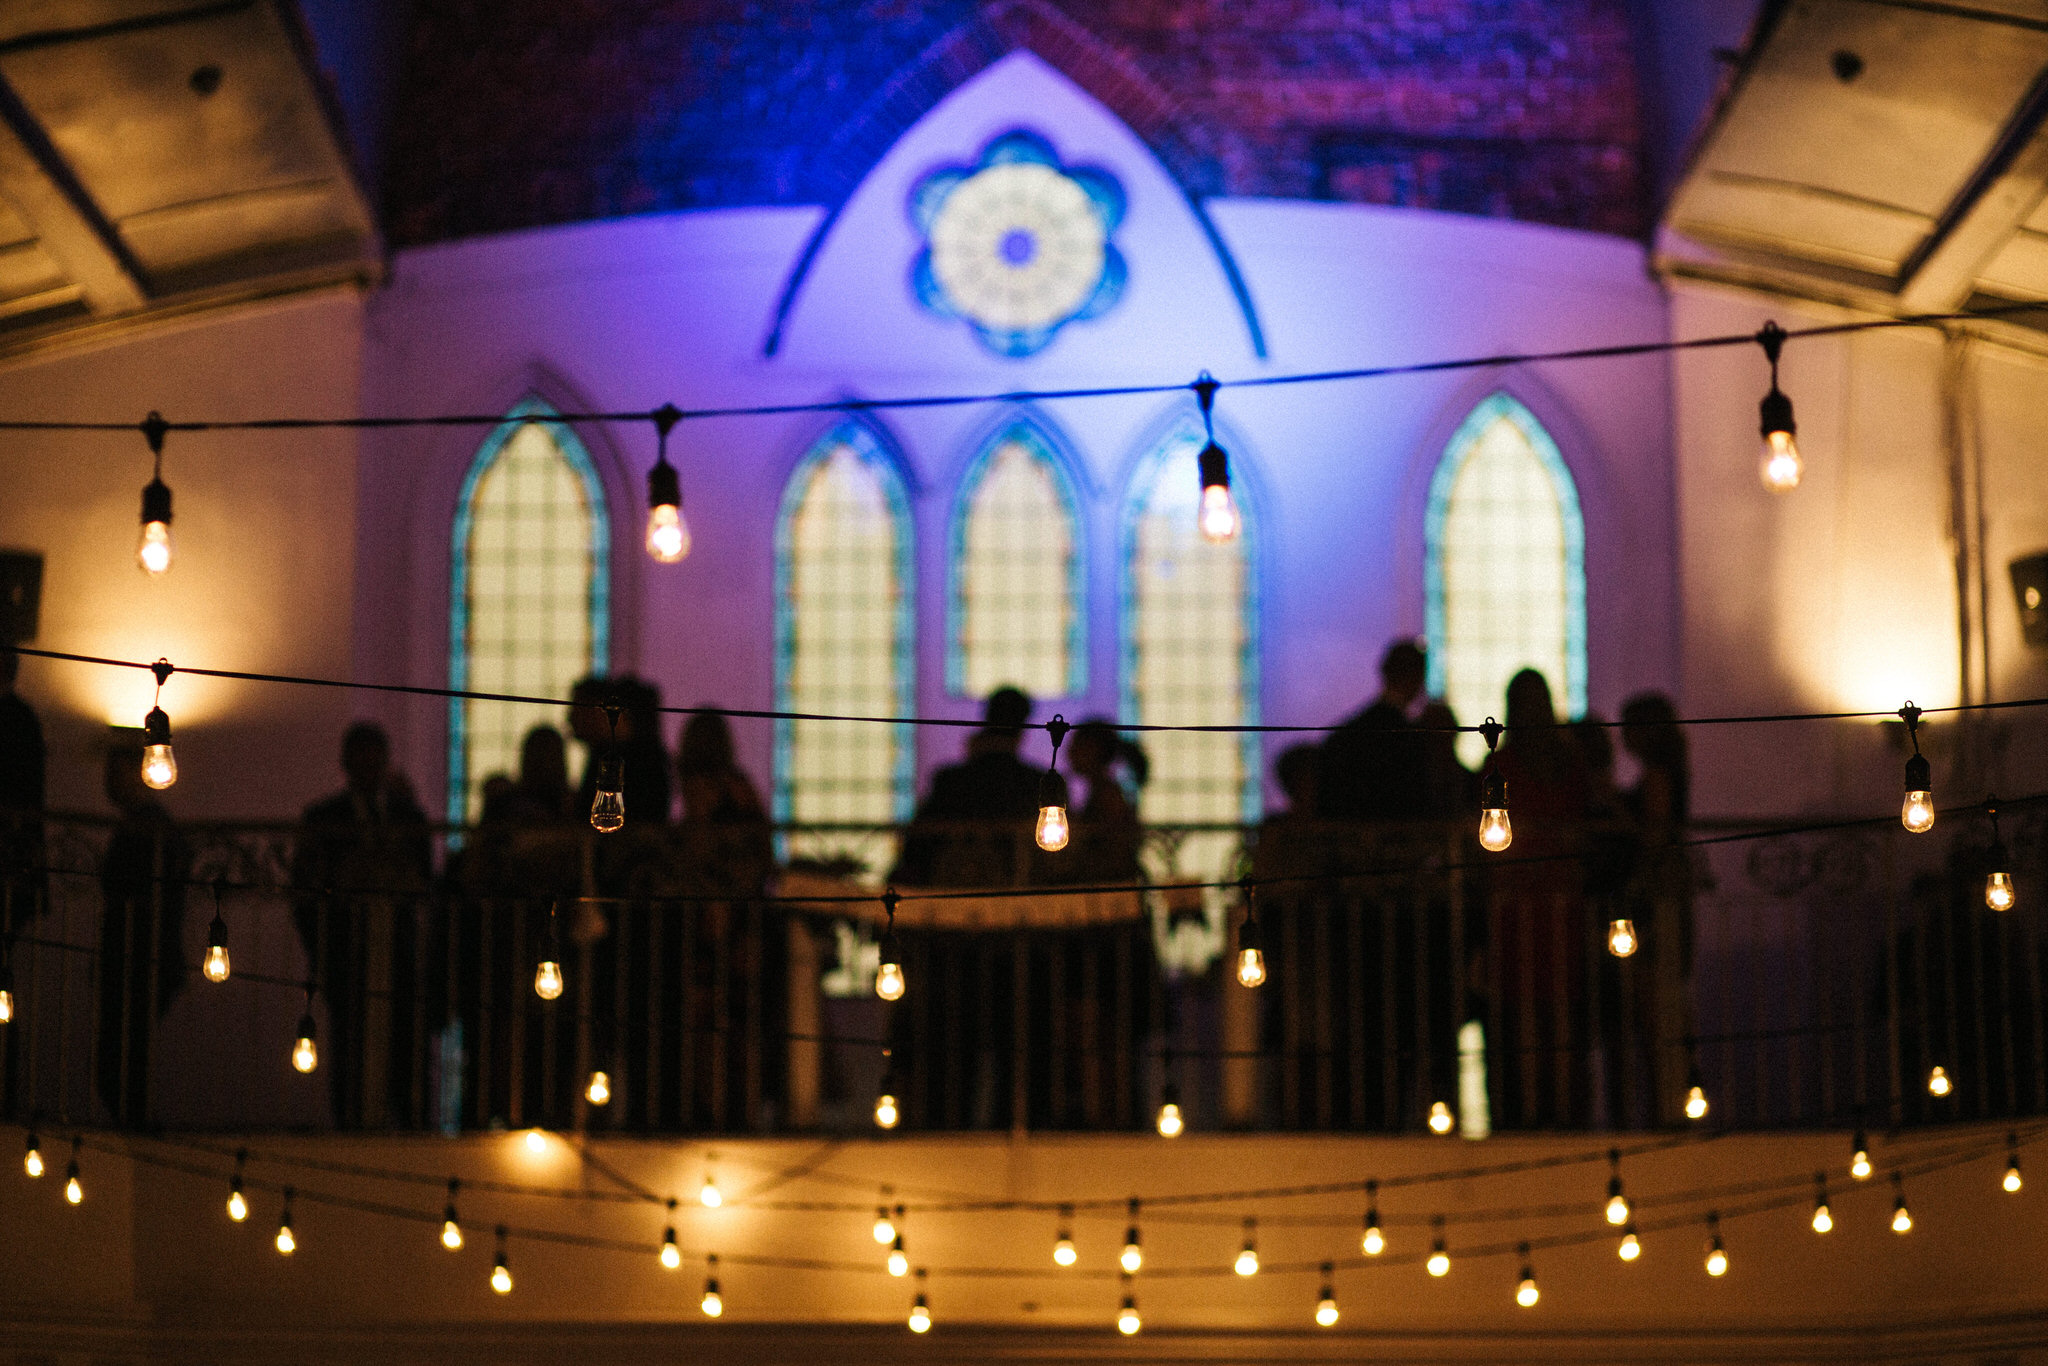 berkeley church string lights, berkeley church wedding toronto, purple uplighting